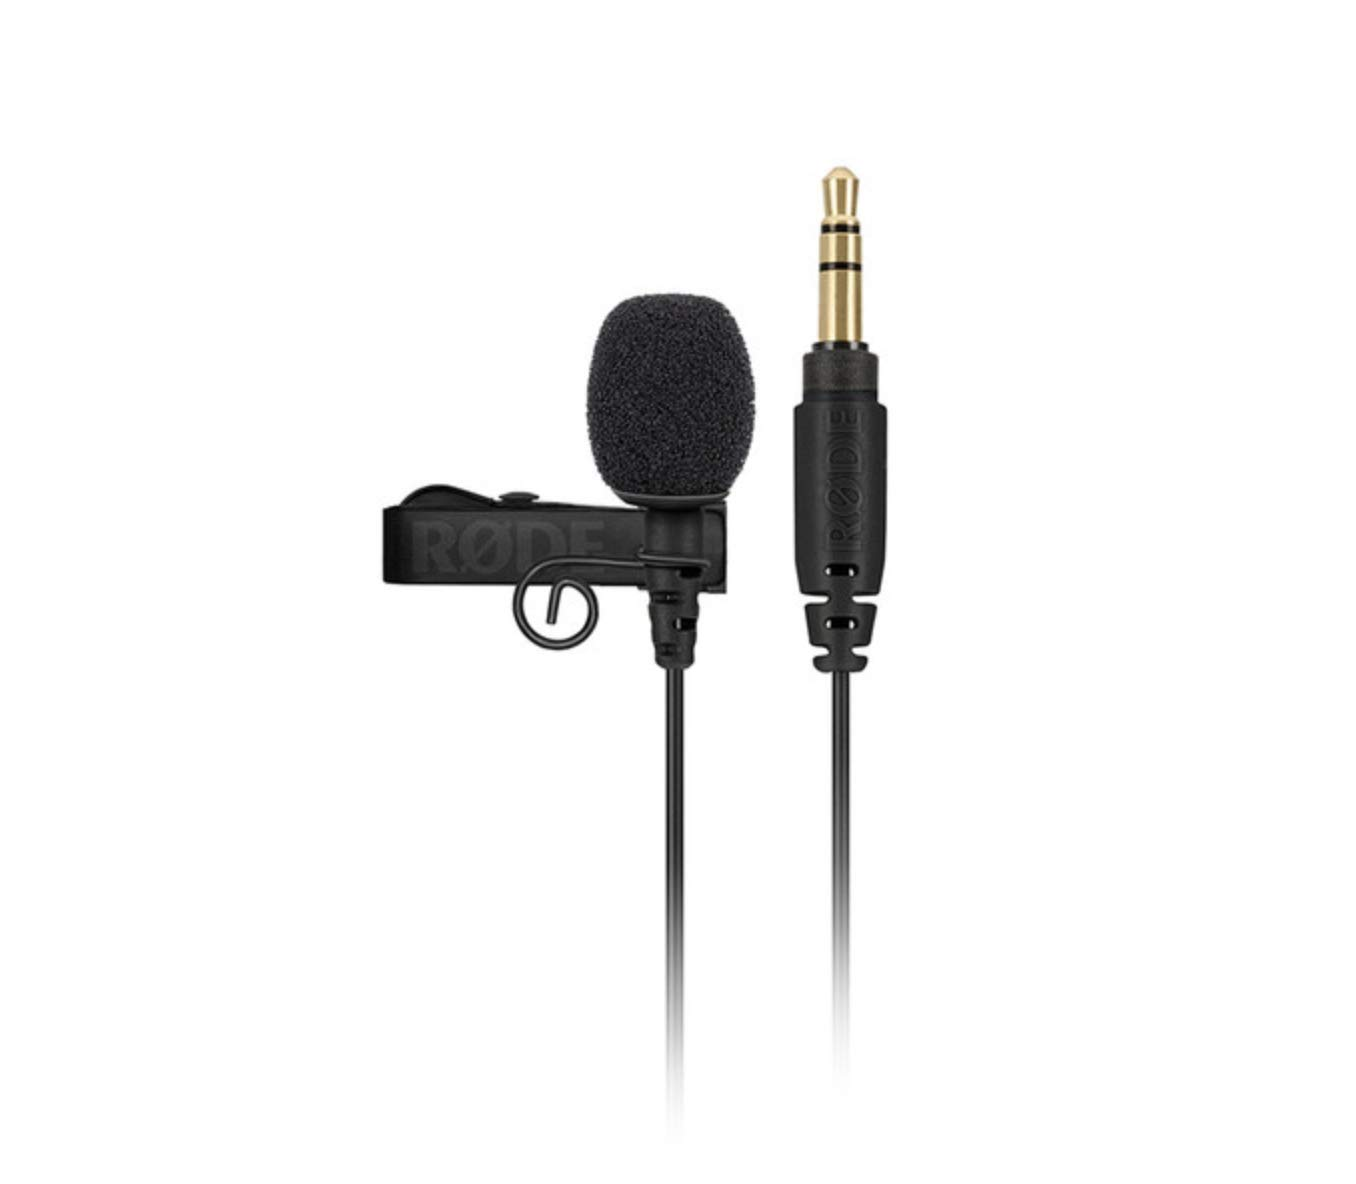 Rode Lavalier Go Professional Wearable Microphone for Wireless GO by Rode